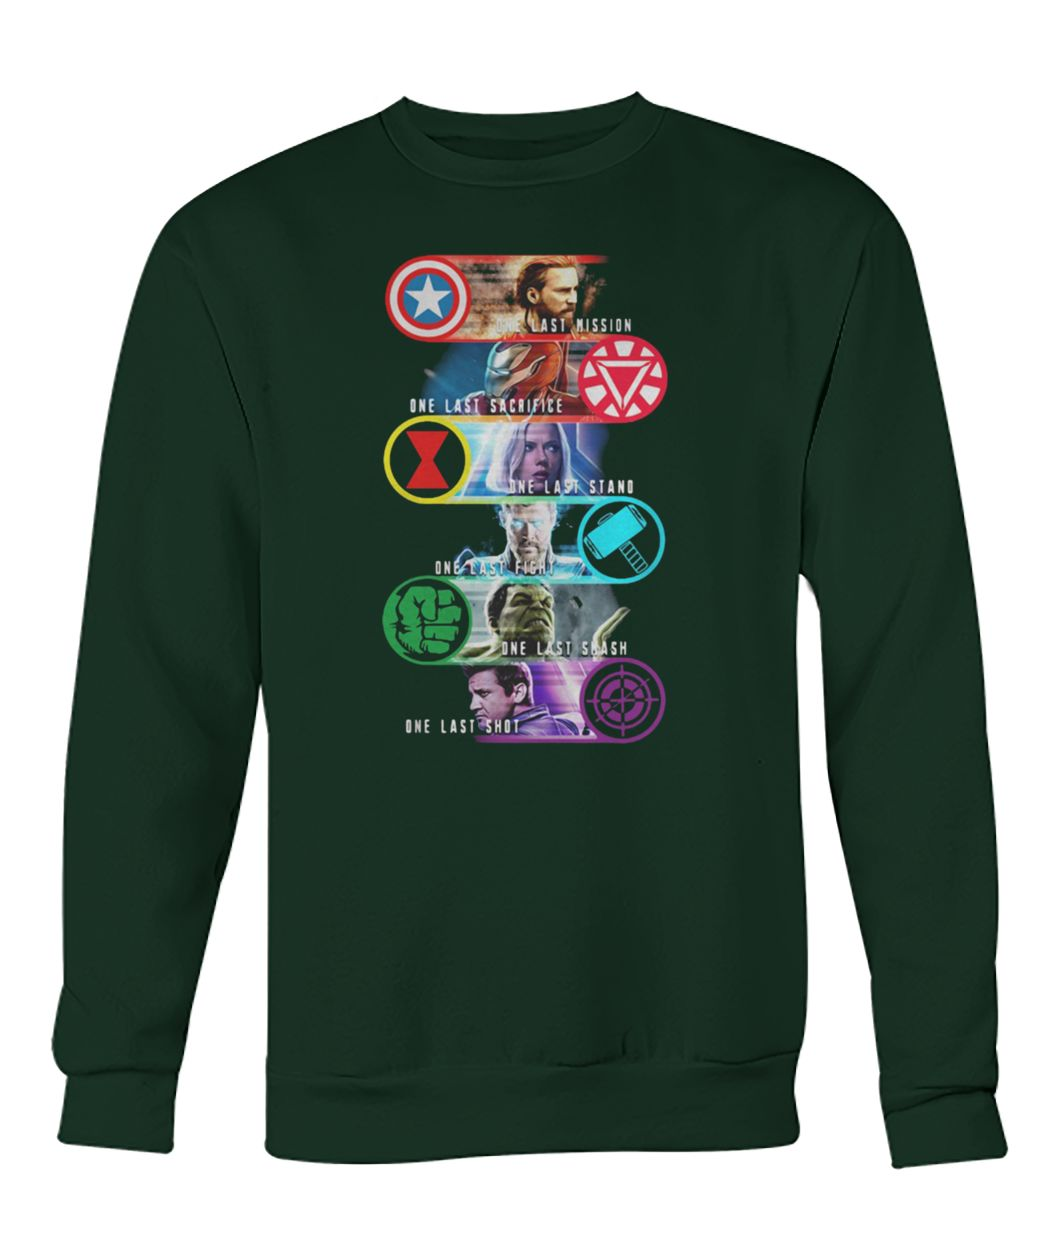 Avengers last mission one last sacrifice one last stand one east fight crew neck sweatshirt